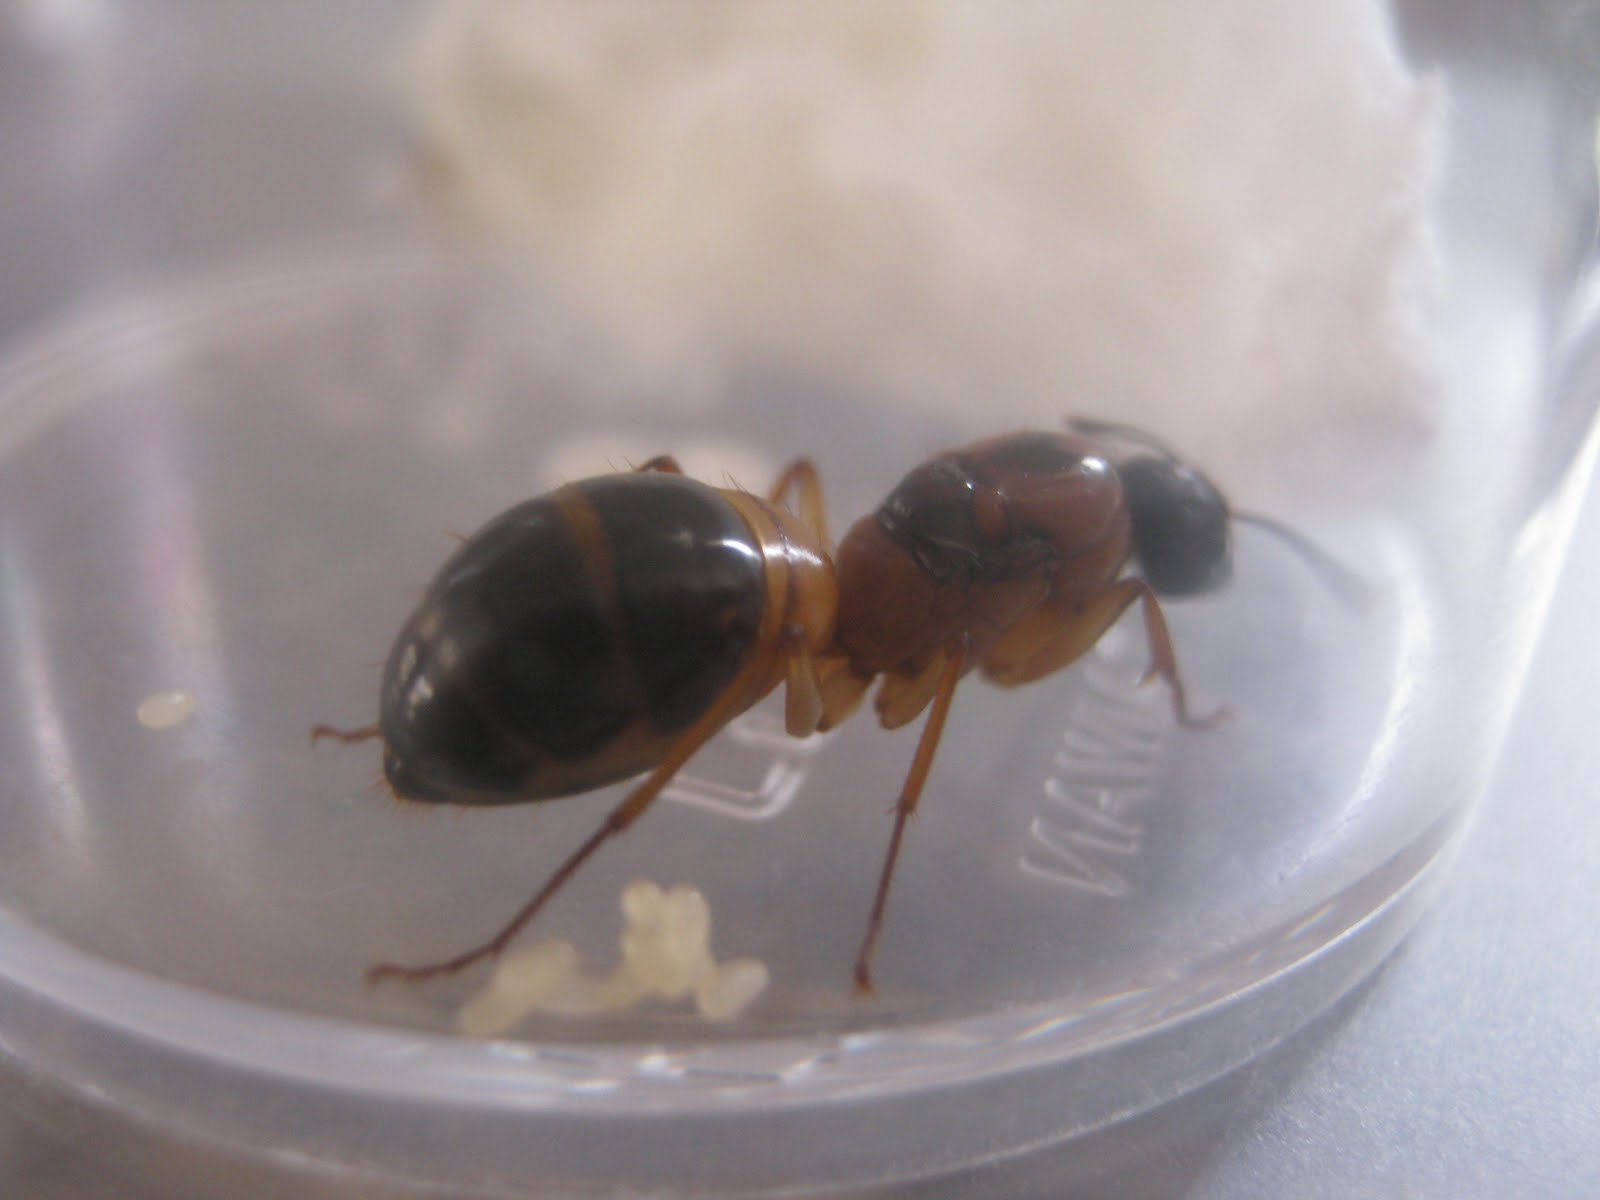 Queen Ant Eggs